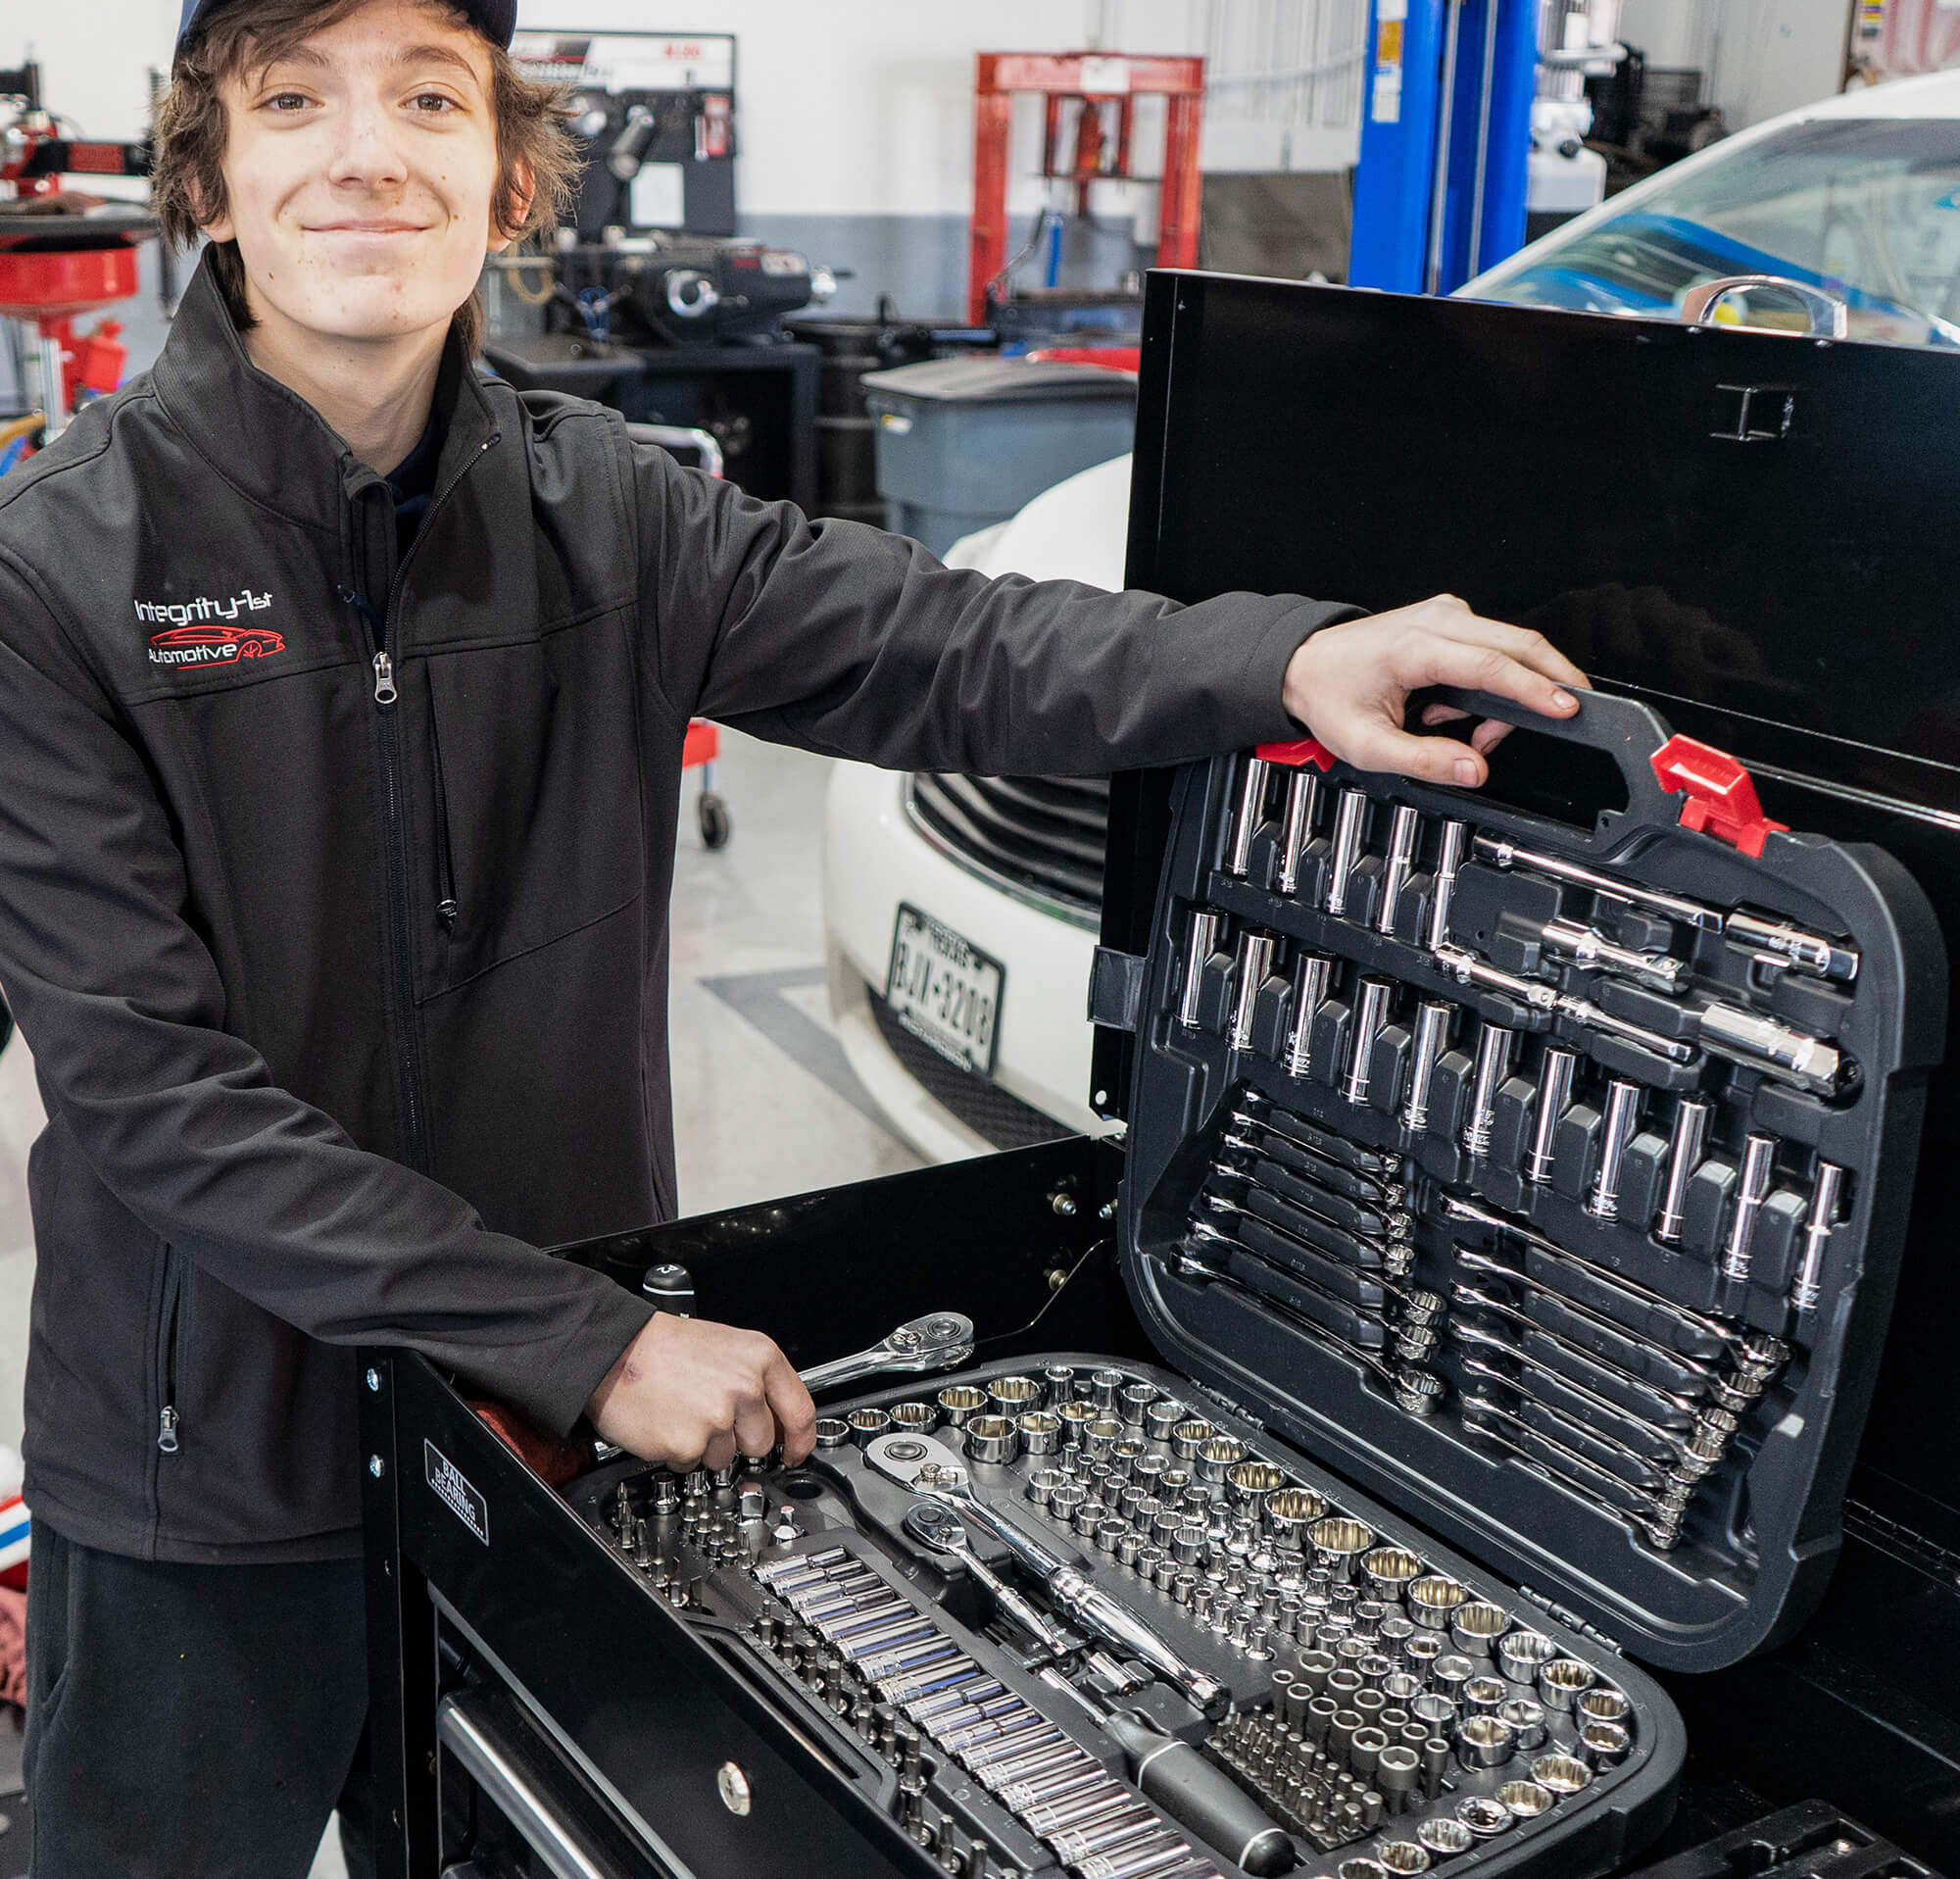 Auto Mechanic Careers in Plano, TX